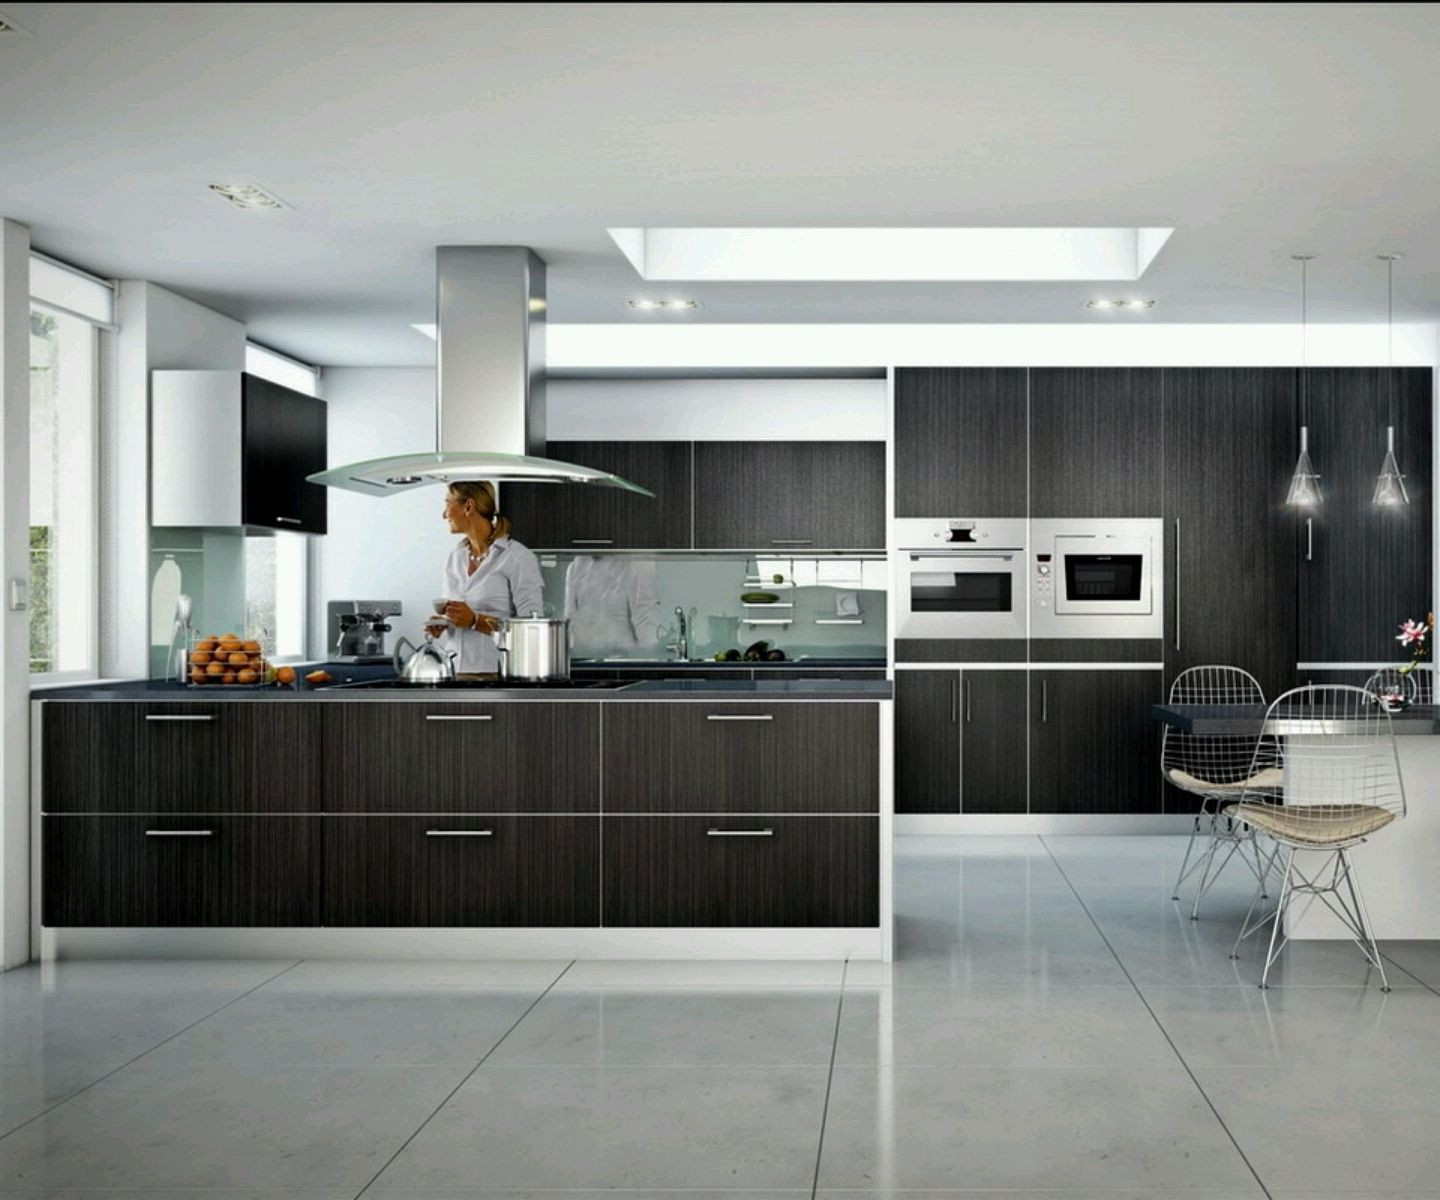 Modern Kitchen Design: Kitchen Renovation Trends 2015; 27+ Ideas To Inspire